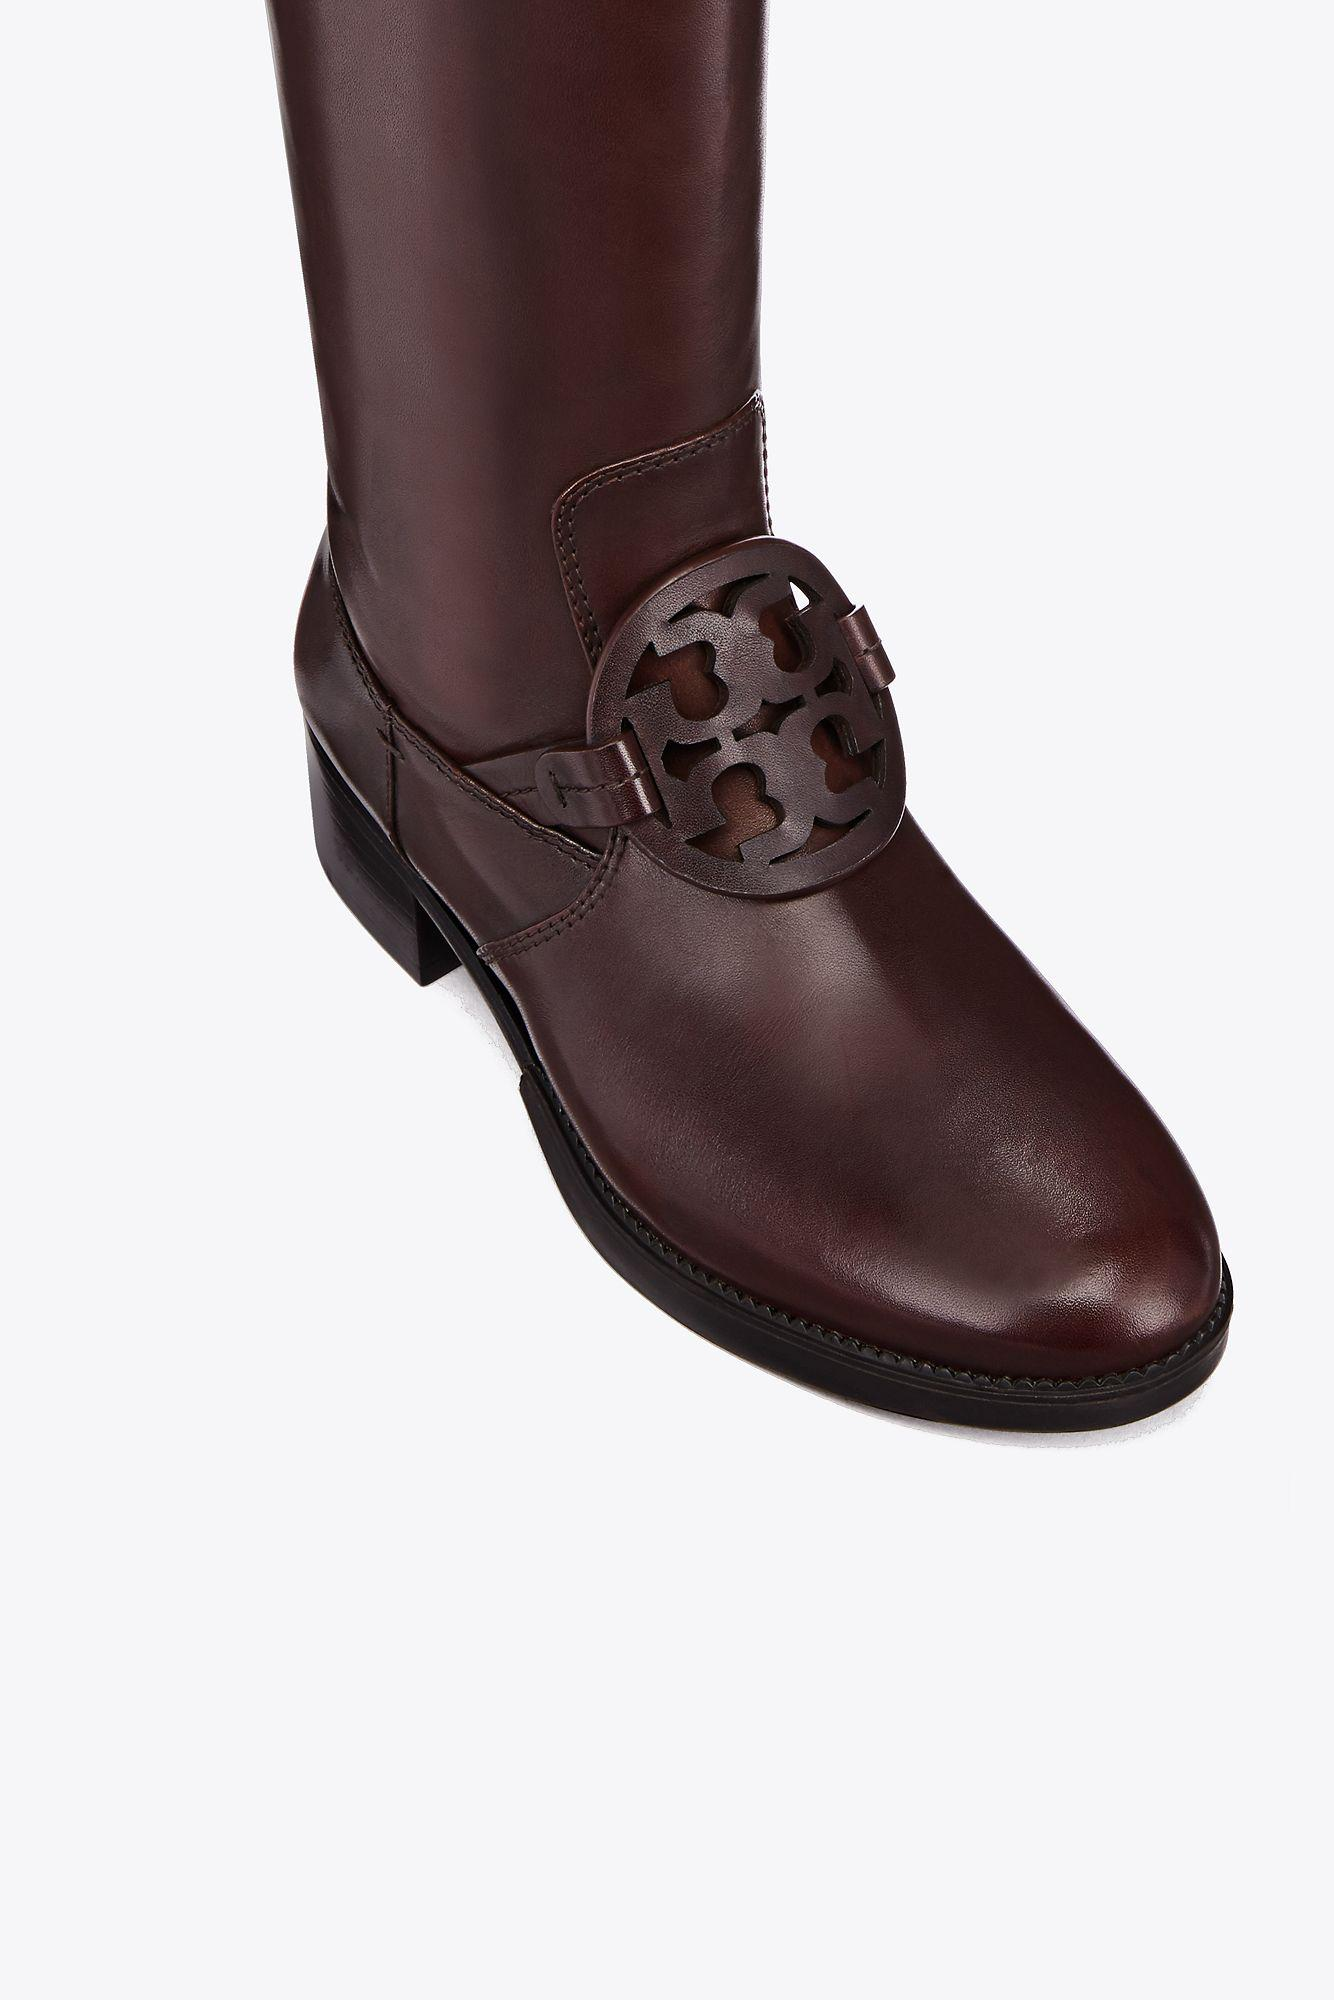 d0c6f687b5736 Lyst - Tory Burch Miller Pull-on Boot in Brown